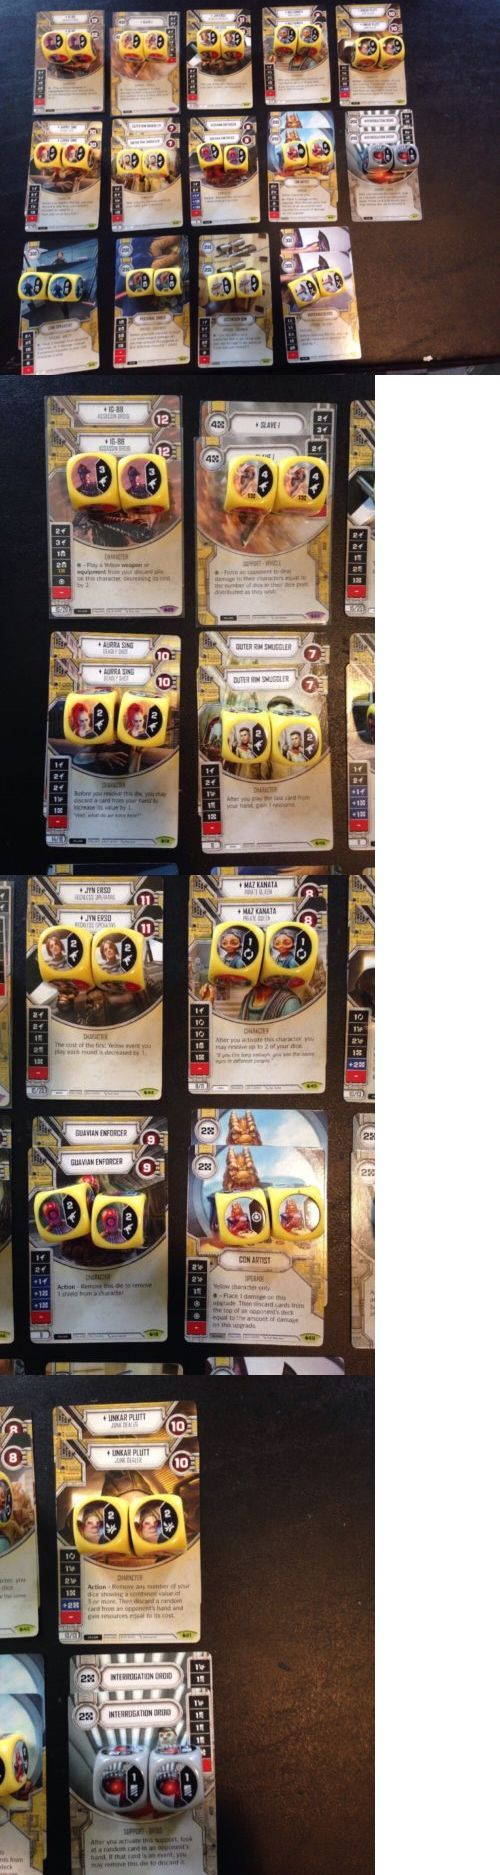 CCG Individual Cards 183454: Star Wars Destiny Sor Ig-88 Slave 1 Jyn Maz Yellow Lot Collection 28 Dice! -> BUY IT NOW ONLY: $174.99 on eBay!